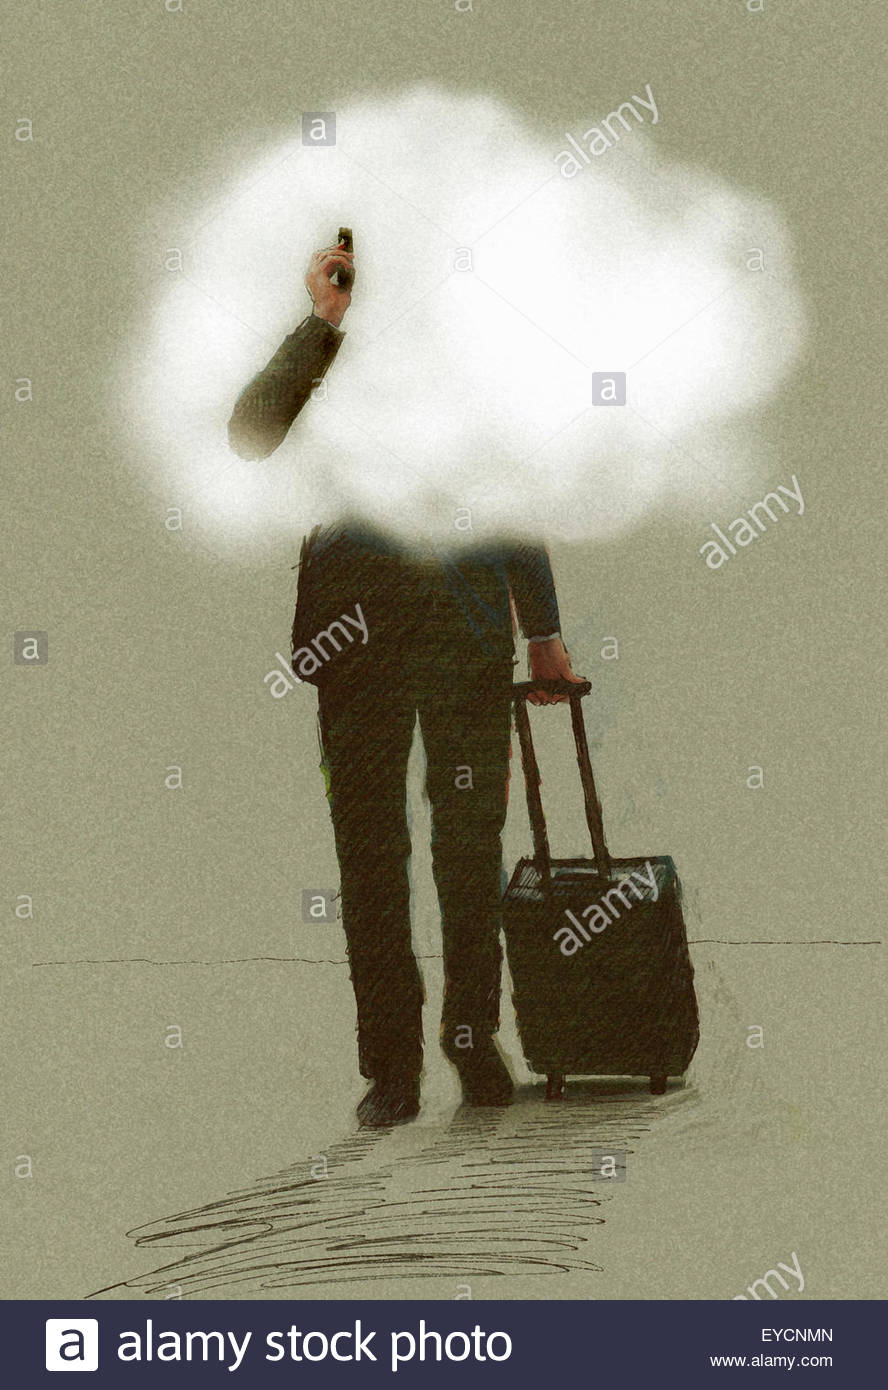 Businessman on the move using phone pulling suitcase with head in the clouds - Stock Image